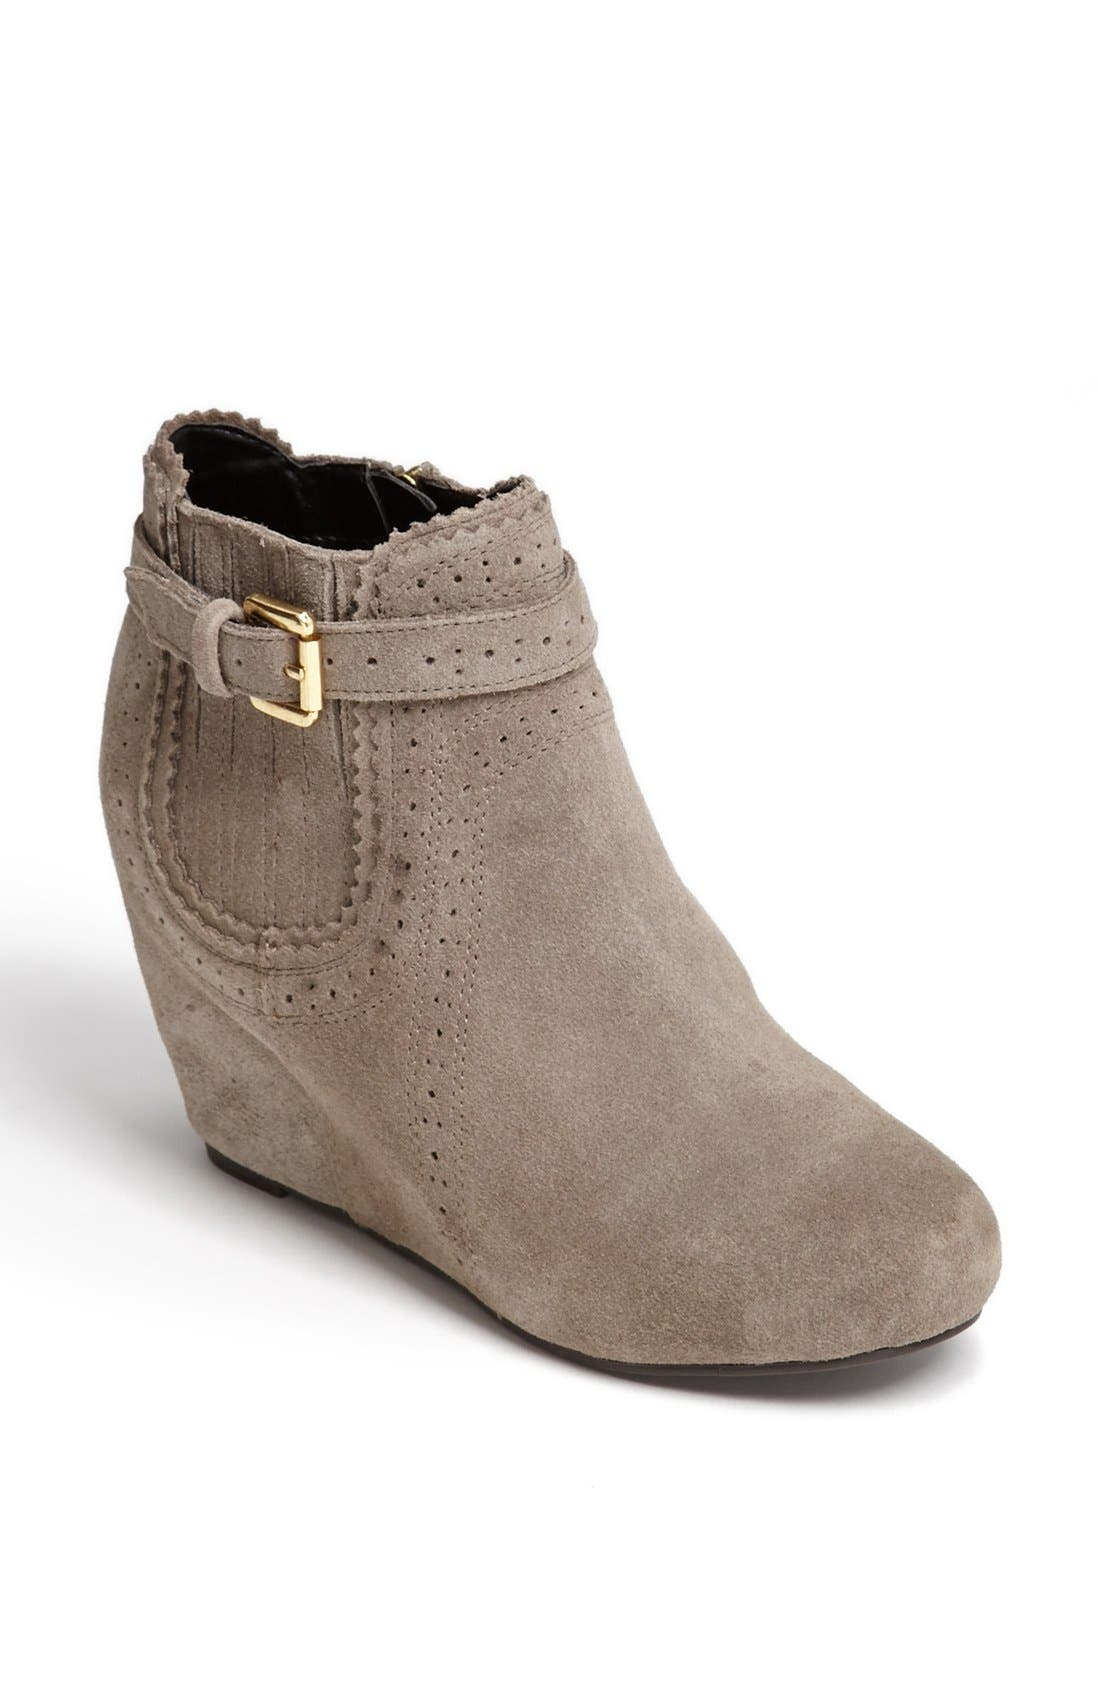 Main Image - DV by Dolce Vita 'Parkers' Boot